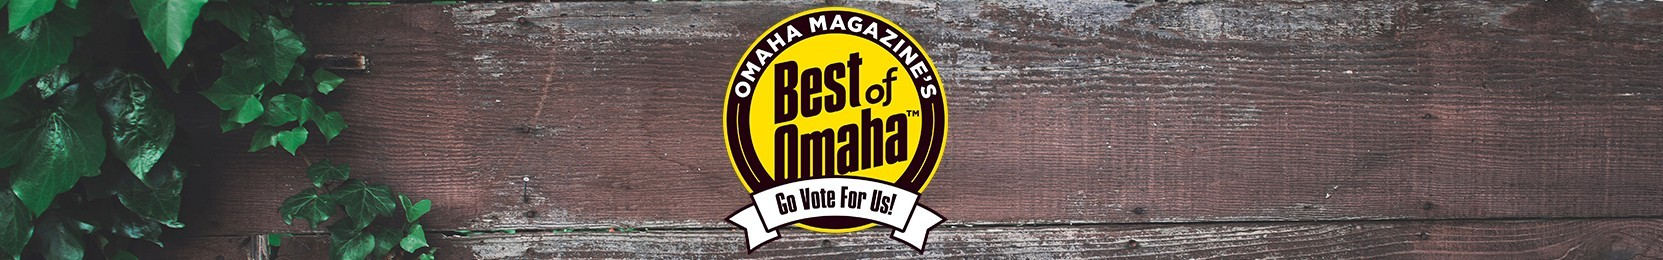 Voting Starts July 1st For Best Of Omaha 2018